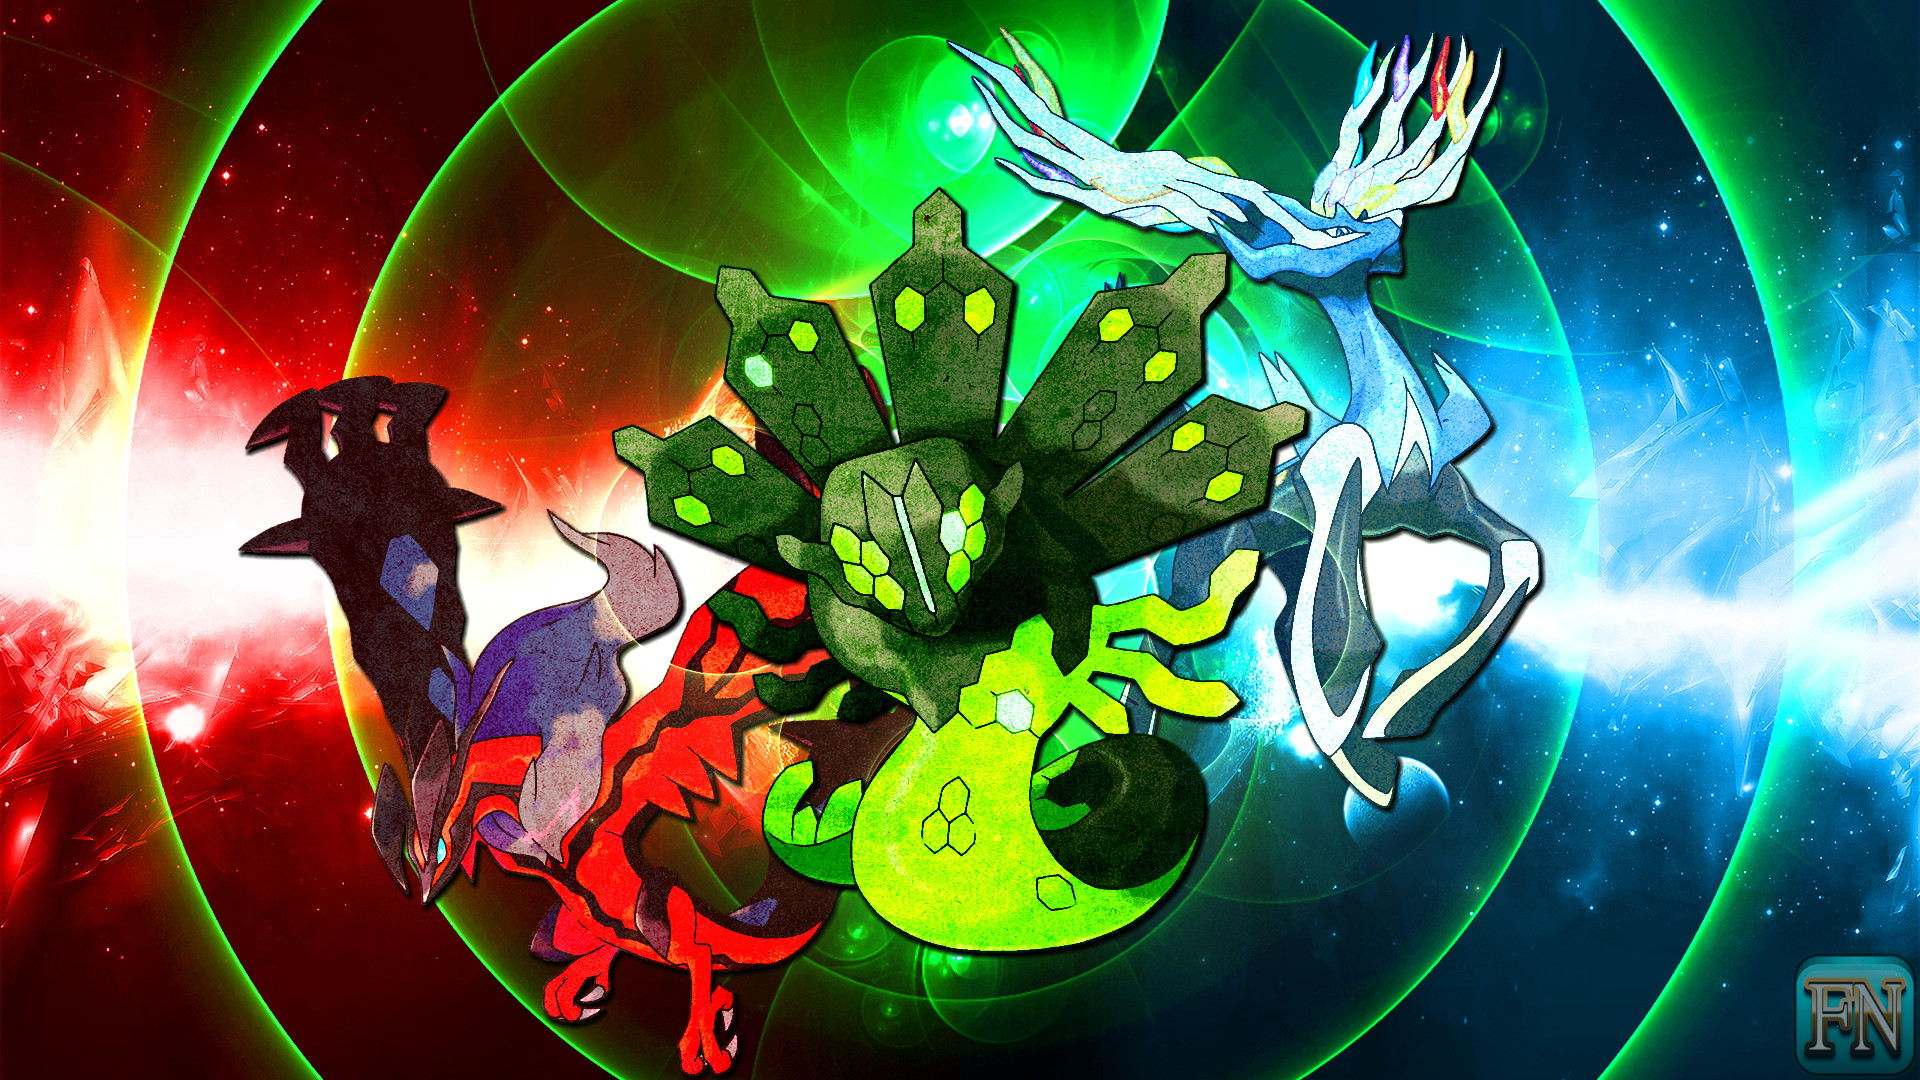 1920x1080 ... Pokemon Wallpaper: Xerneas Yveltal and Zygarde by FRUITYNITE